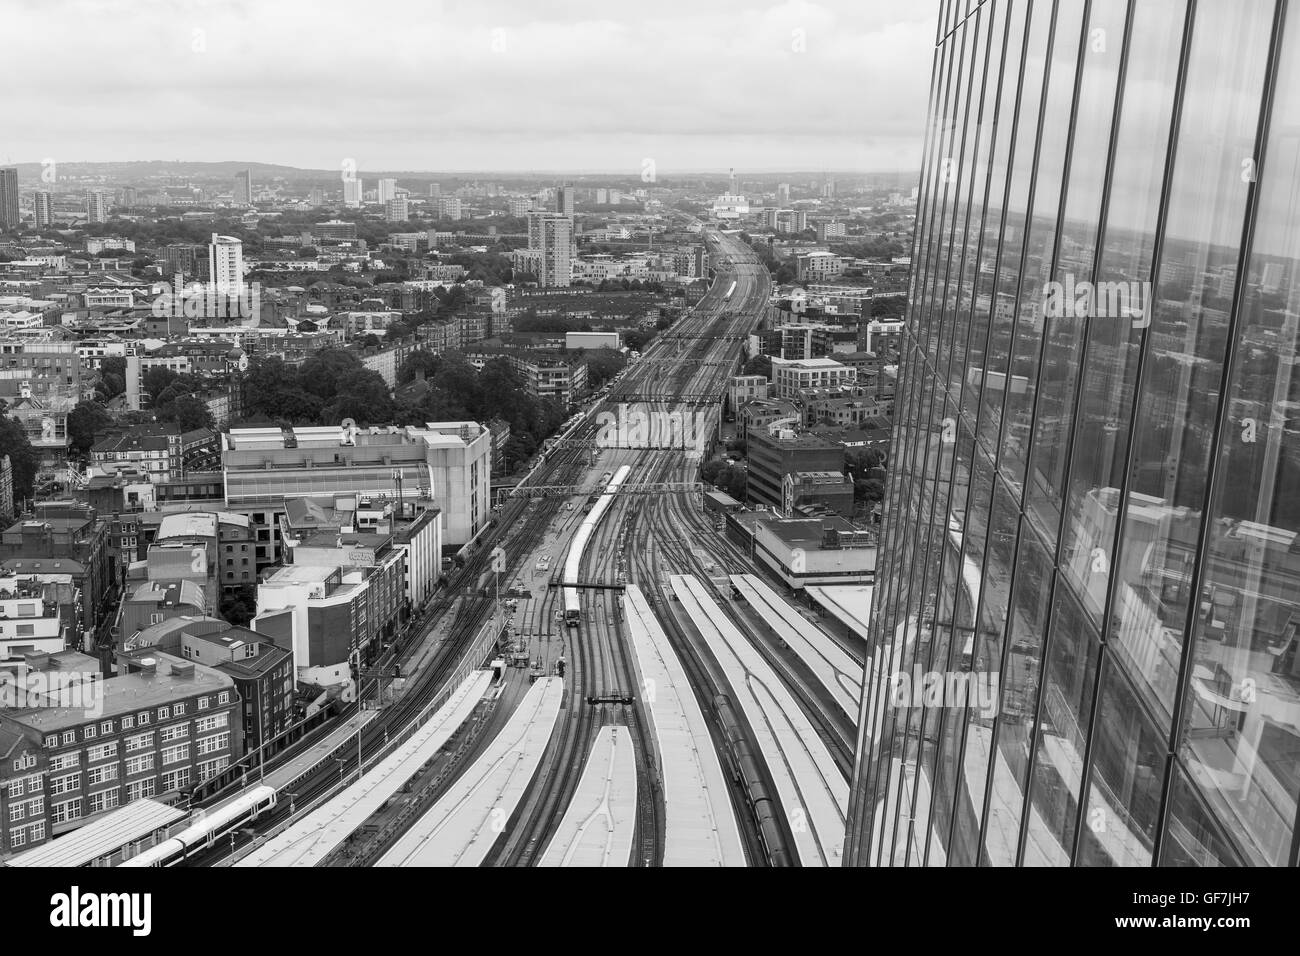 London, England - June 2016. View of train tracks and platforms from the Shard building - Stock Image